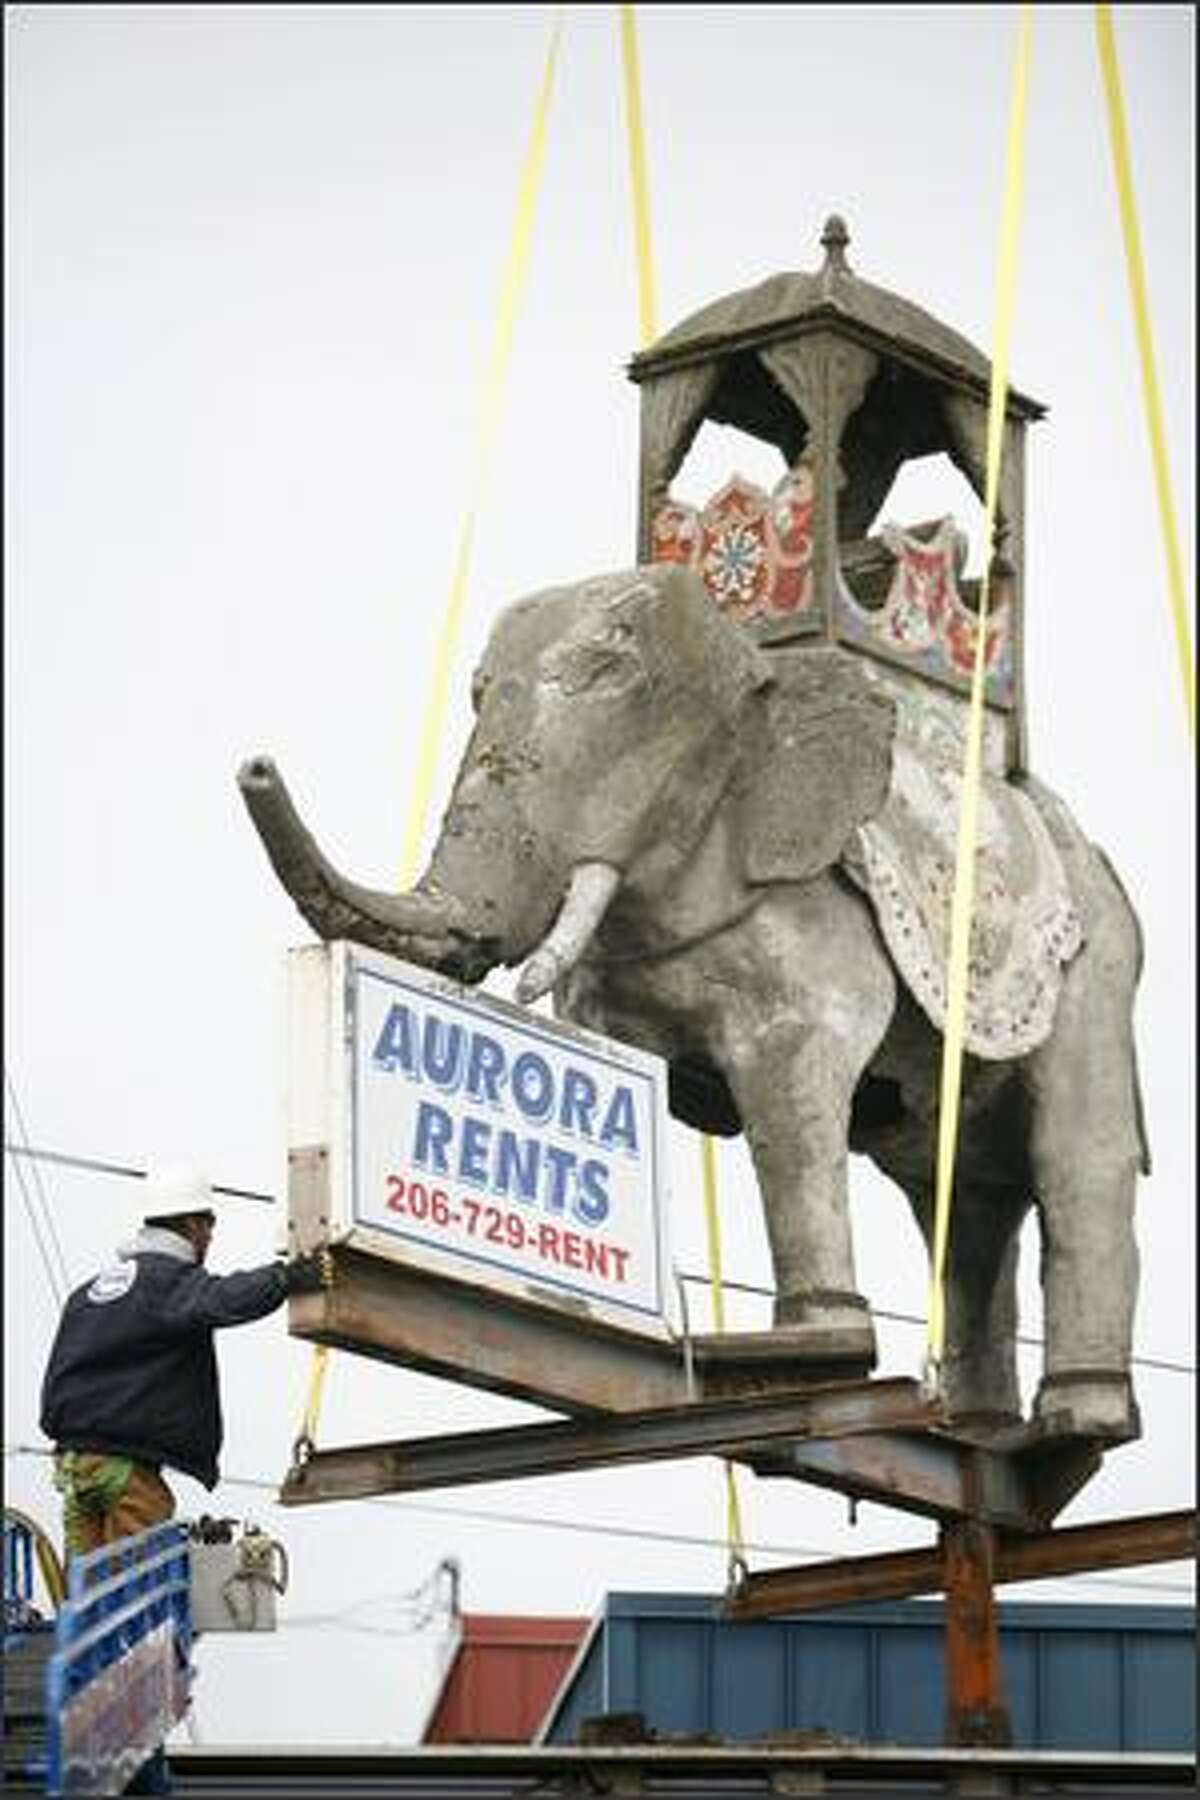 Chris Beasley with Shoreline Sign and Awning guides the 8,400 pound concrete elephant in front of Aurora Rents in north Seattle.